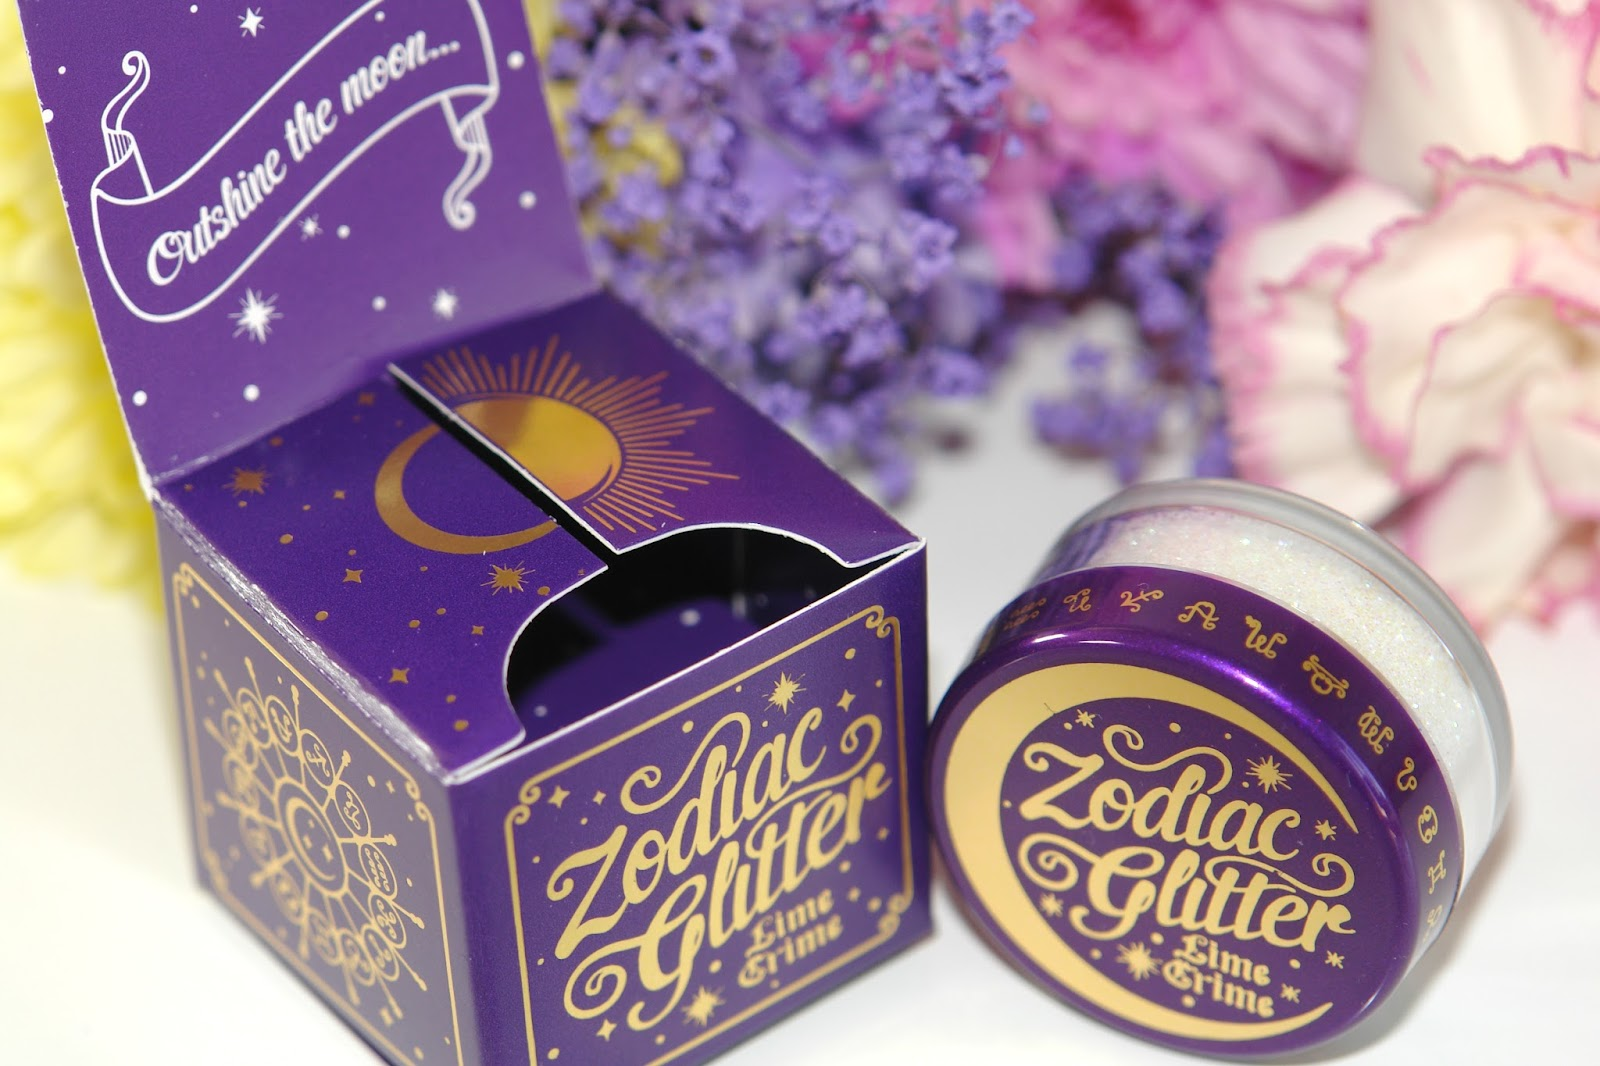 Lime Crime Zodiac Cosmetic Glitter in Gemini, galaxy, glitter, Lime Crime, make up, review, beauty, make up, top UK blog